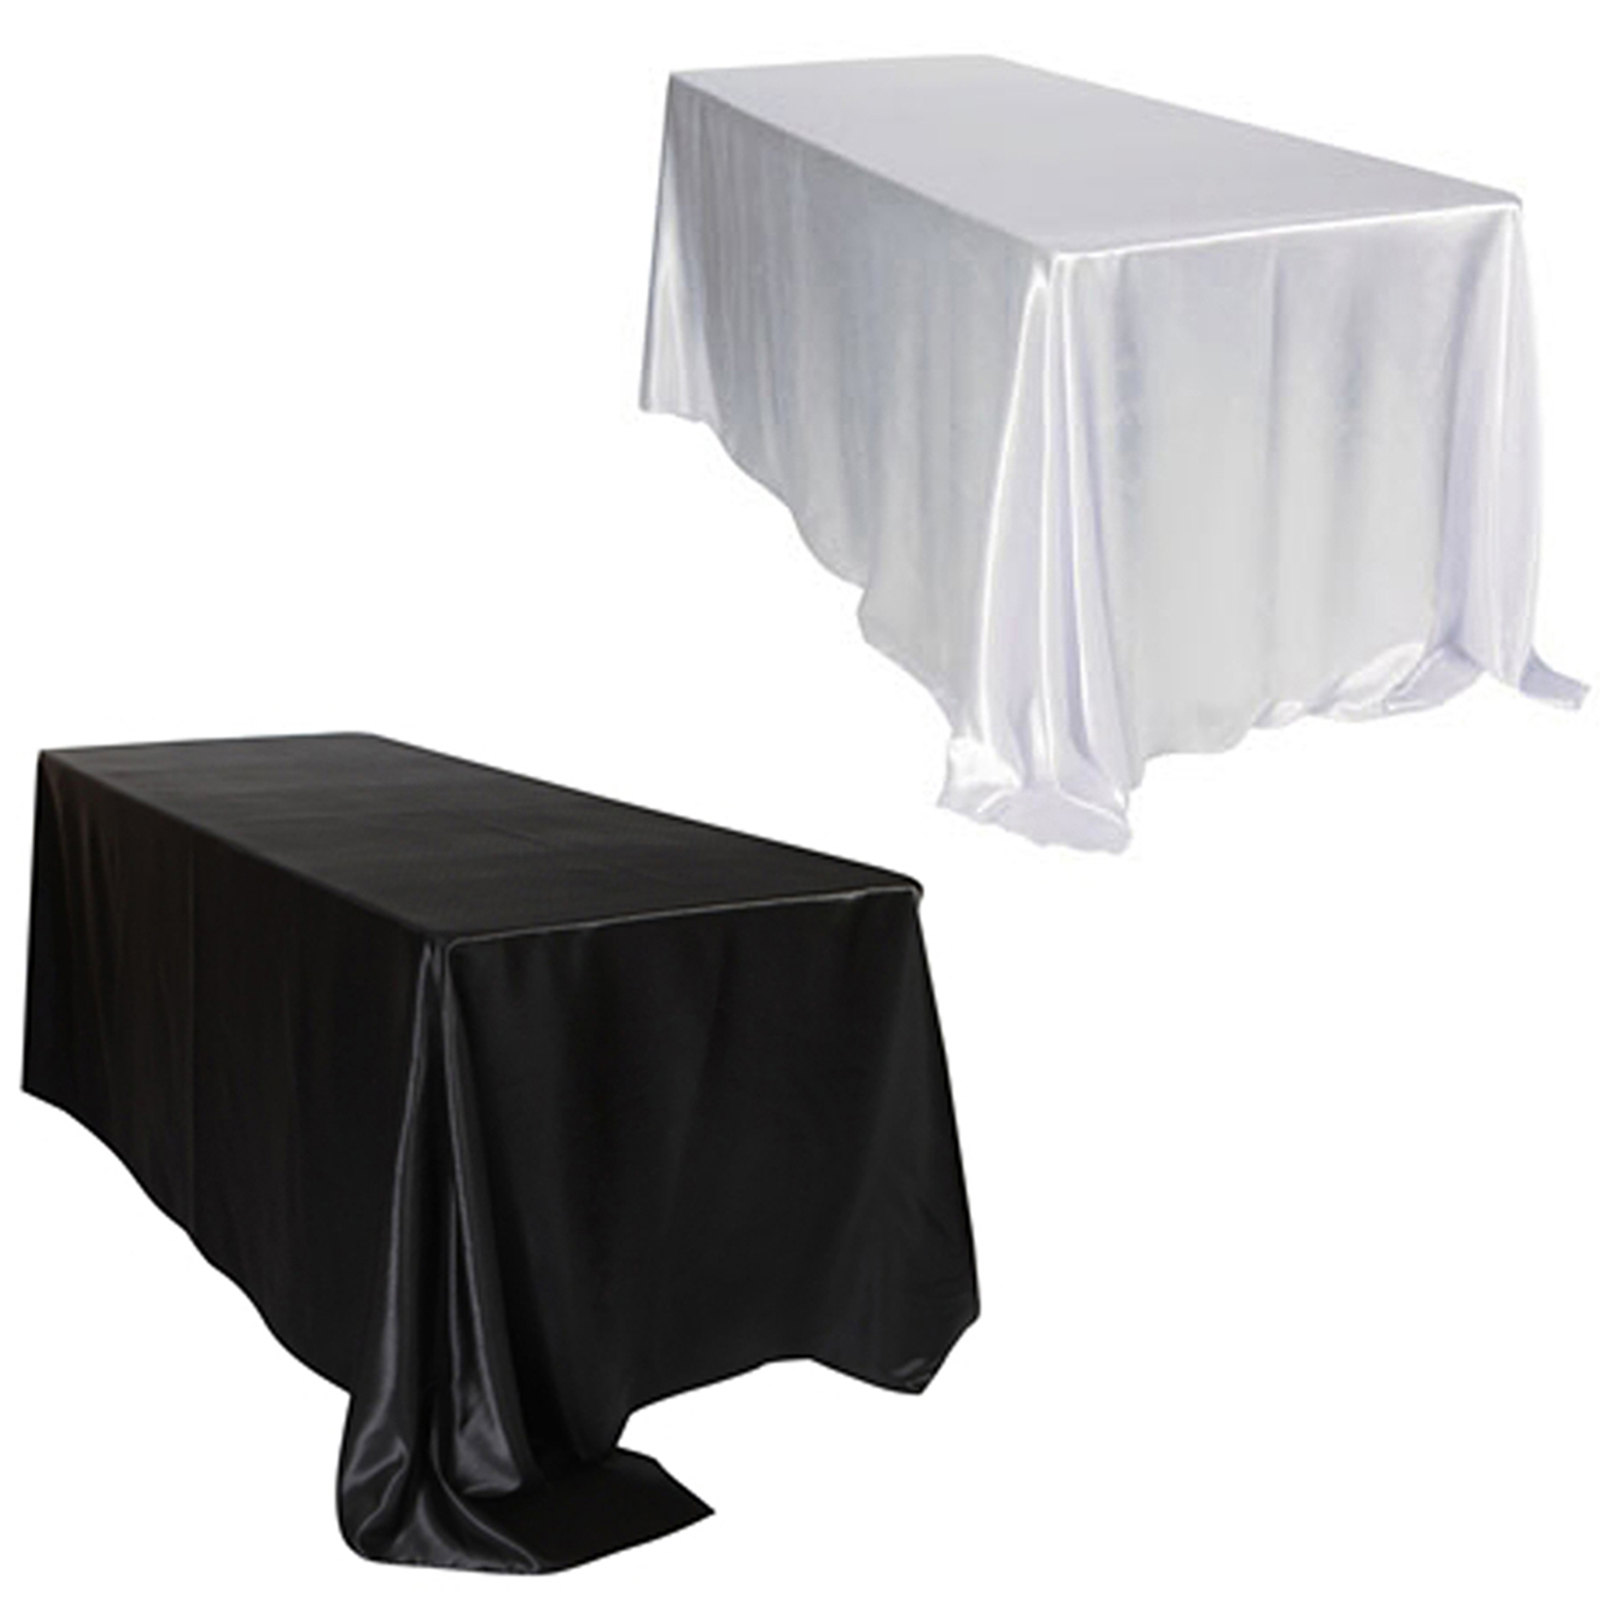 Celebrations Occasions Skull Tablecloth Table Cloth White Tablecover Halloween Party Prop 120 180cm Home Furniture Diy 5050 Pk